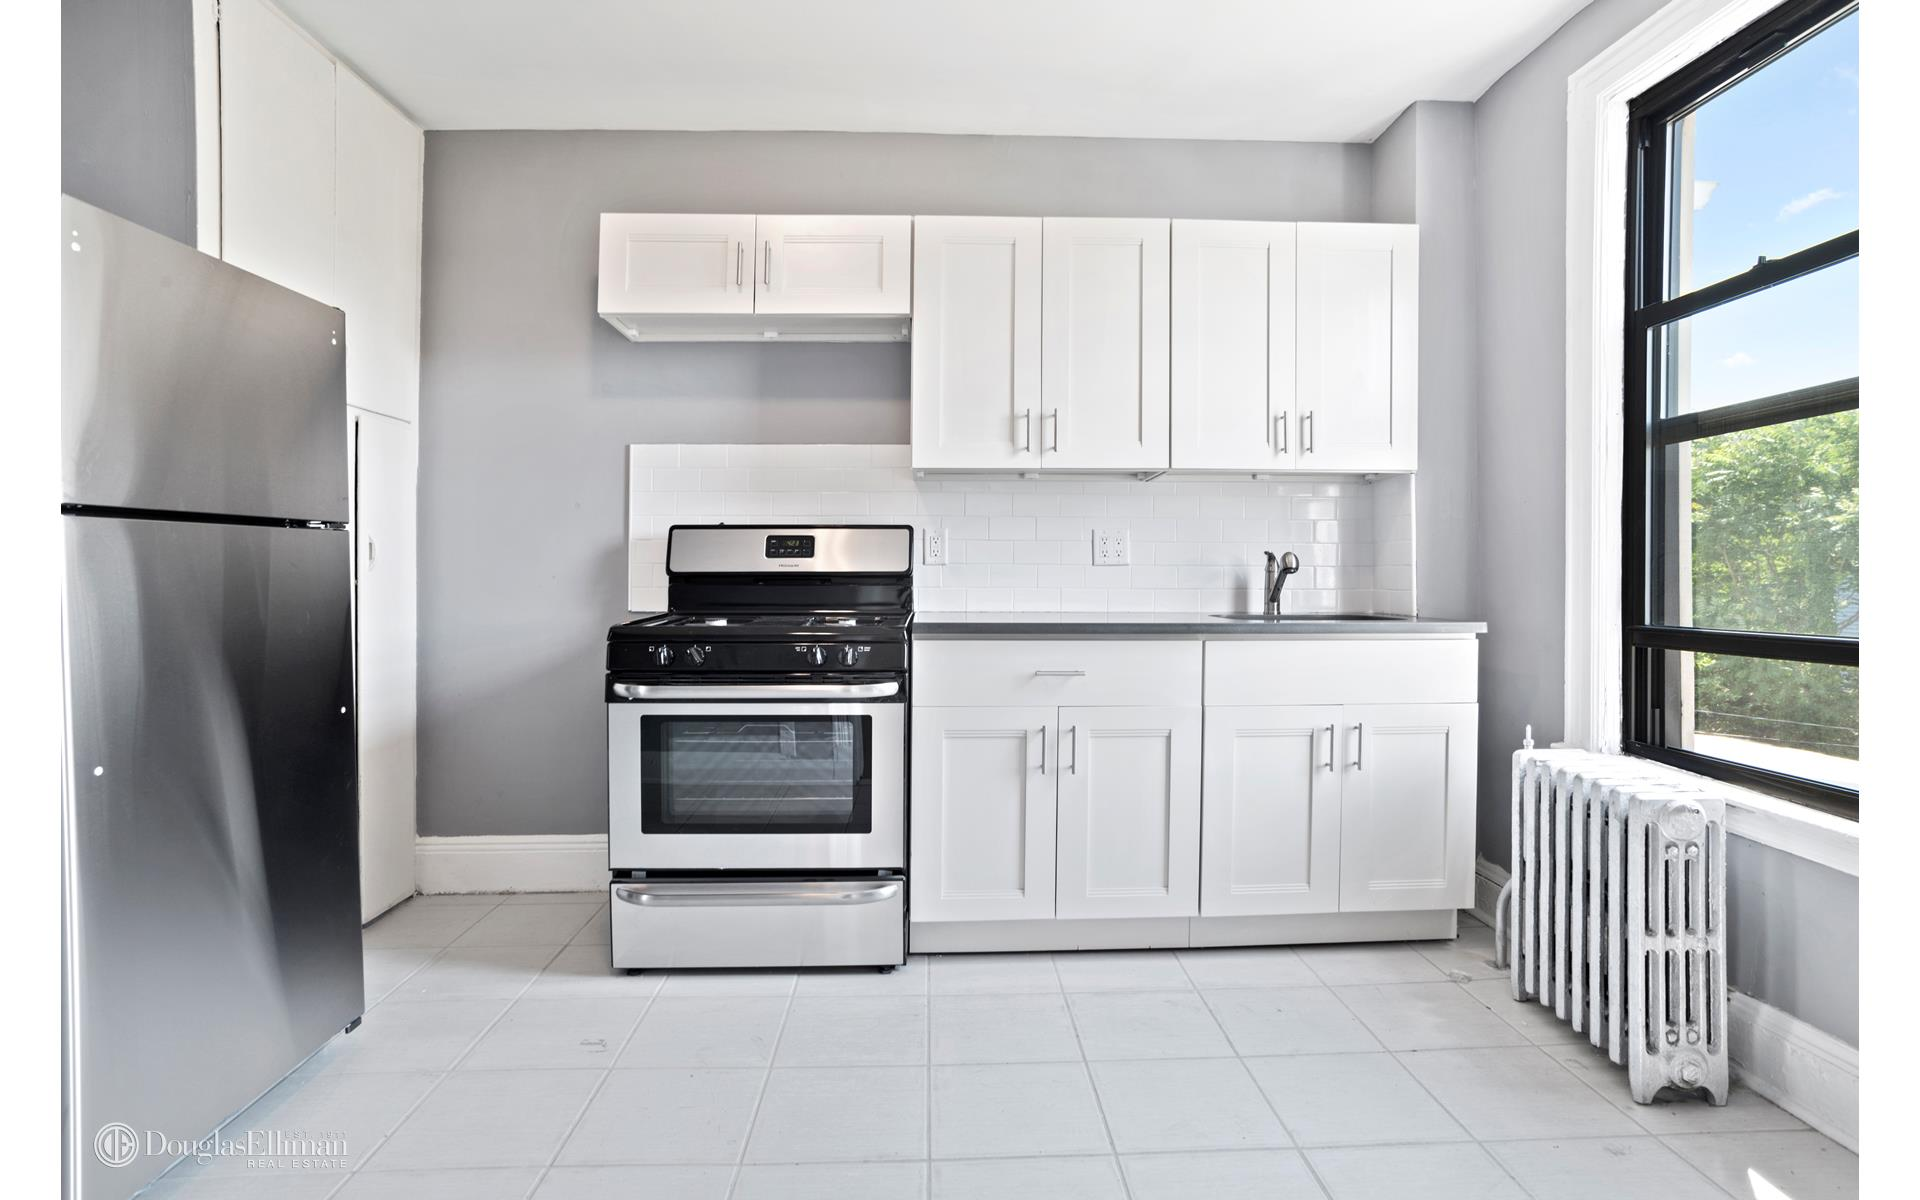 east new york apartments for rent likewise section 8 2 bedroom